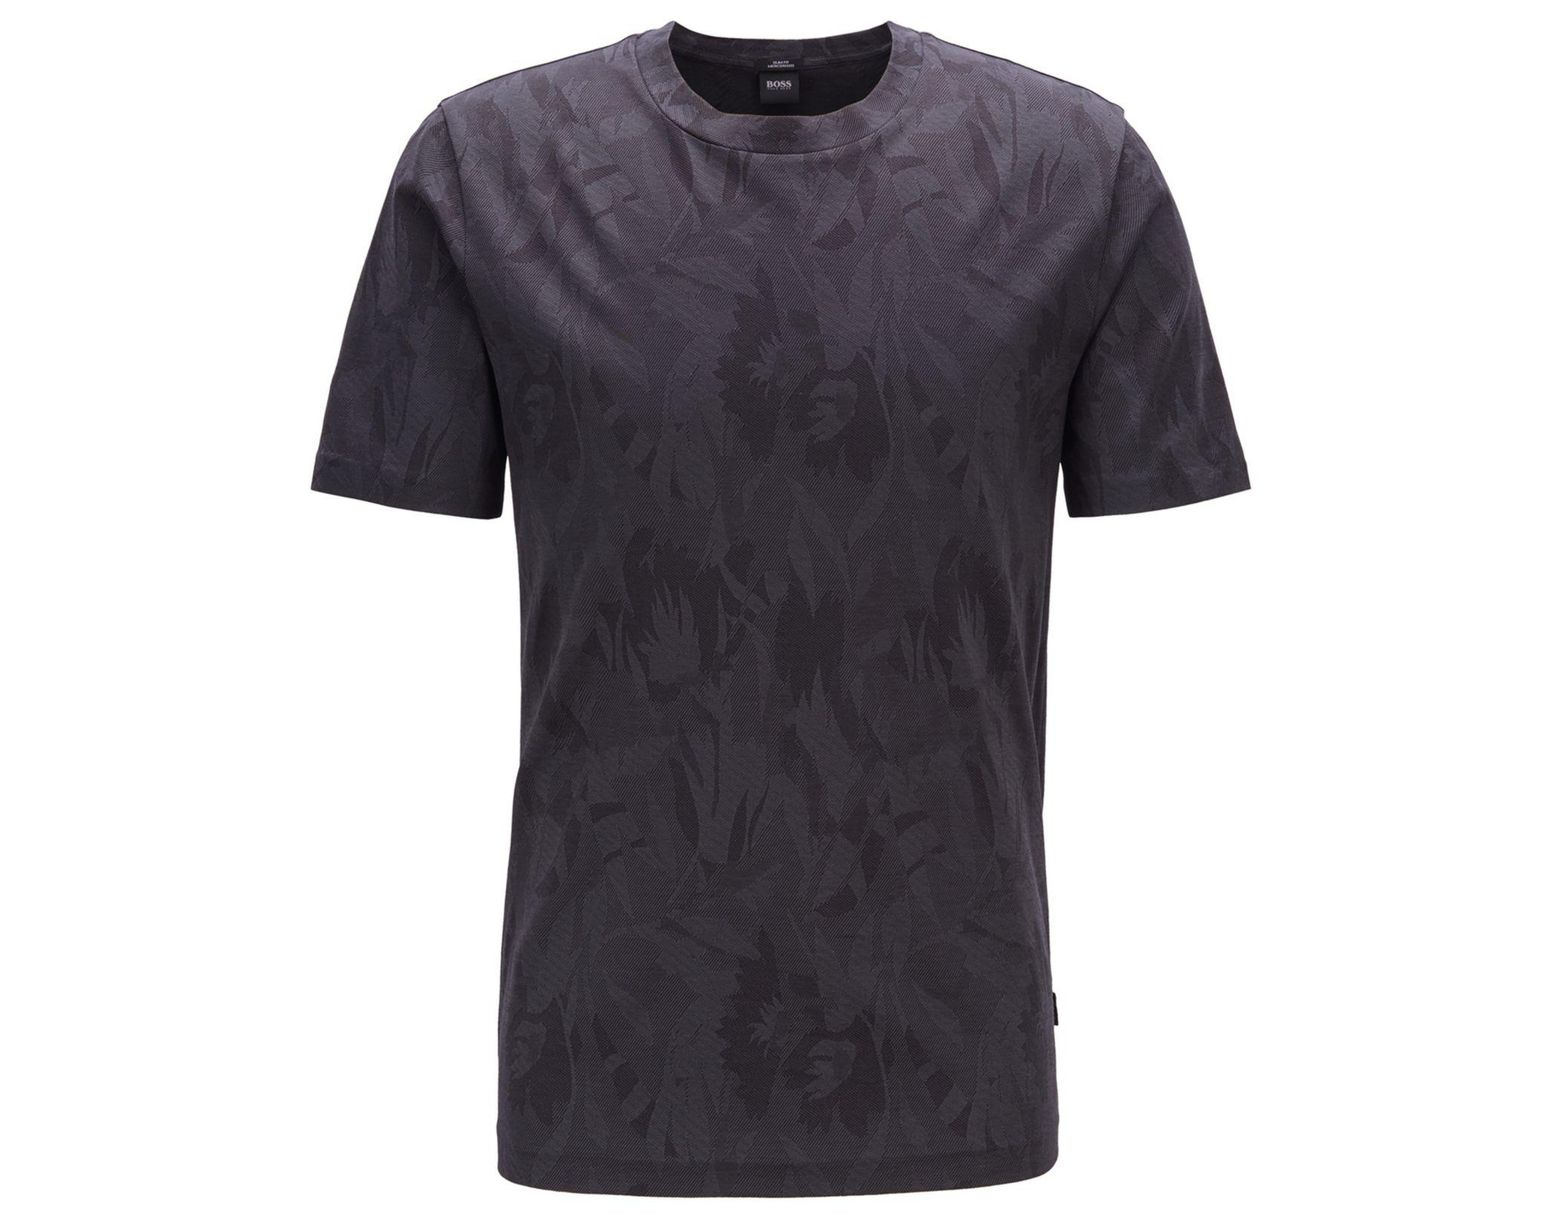 6931ab3c BOSS Tessler 121 Slim-fit Cotton Jacquard T-shirt in Black for Men - Lyst